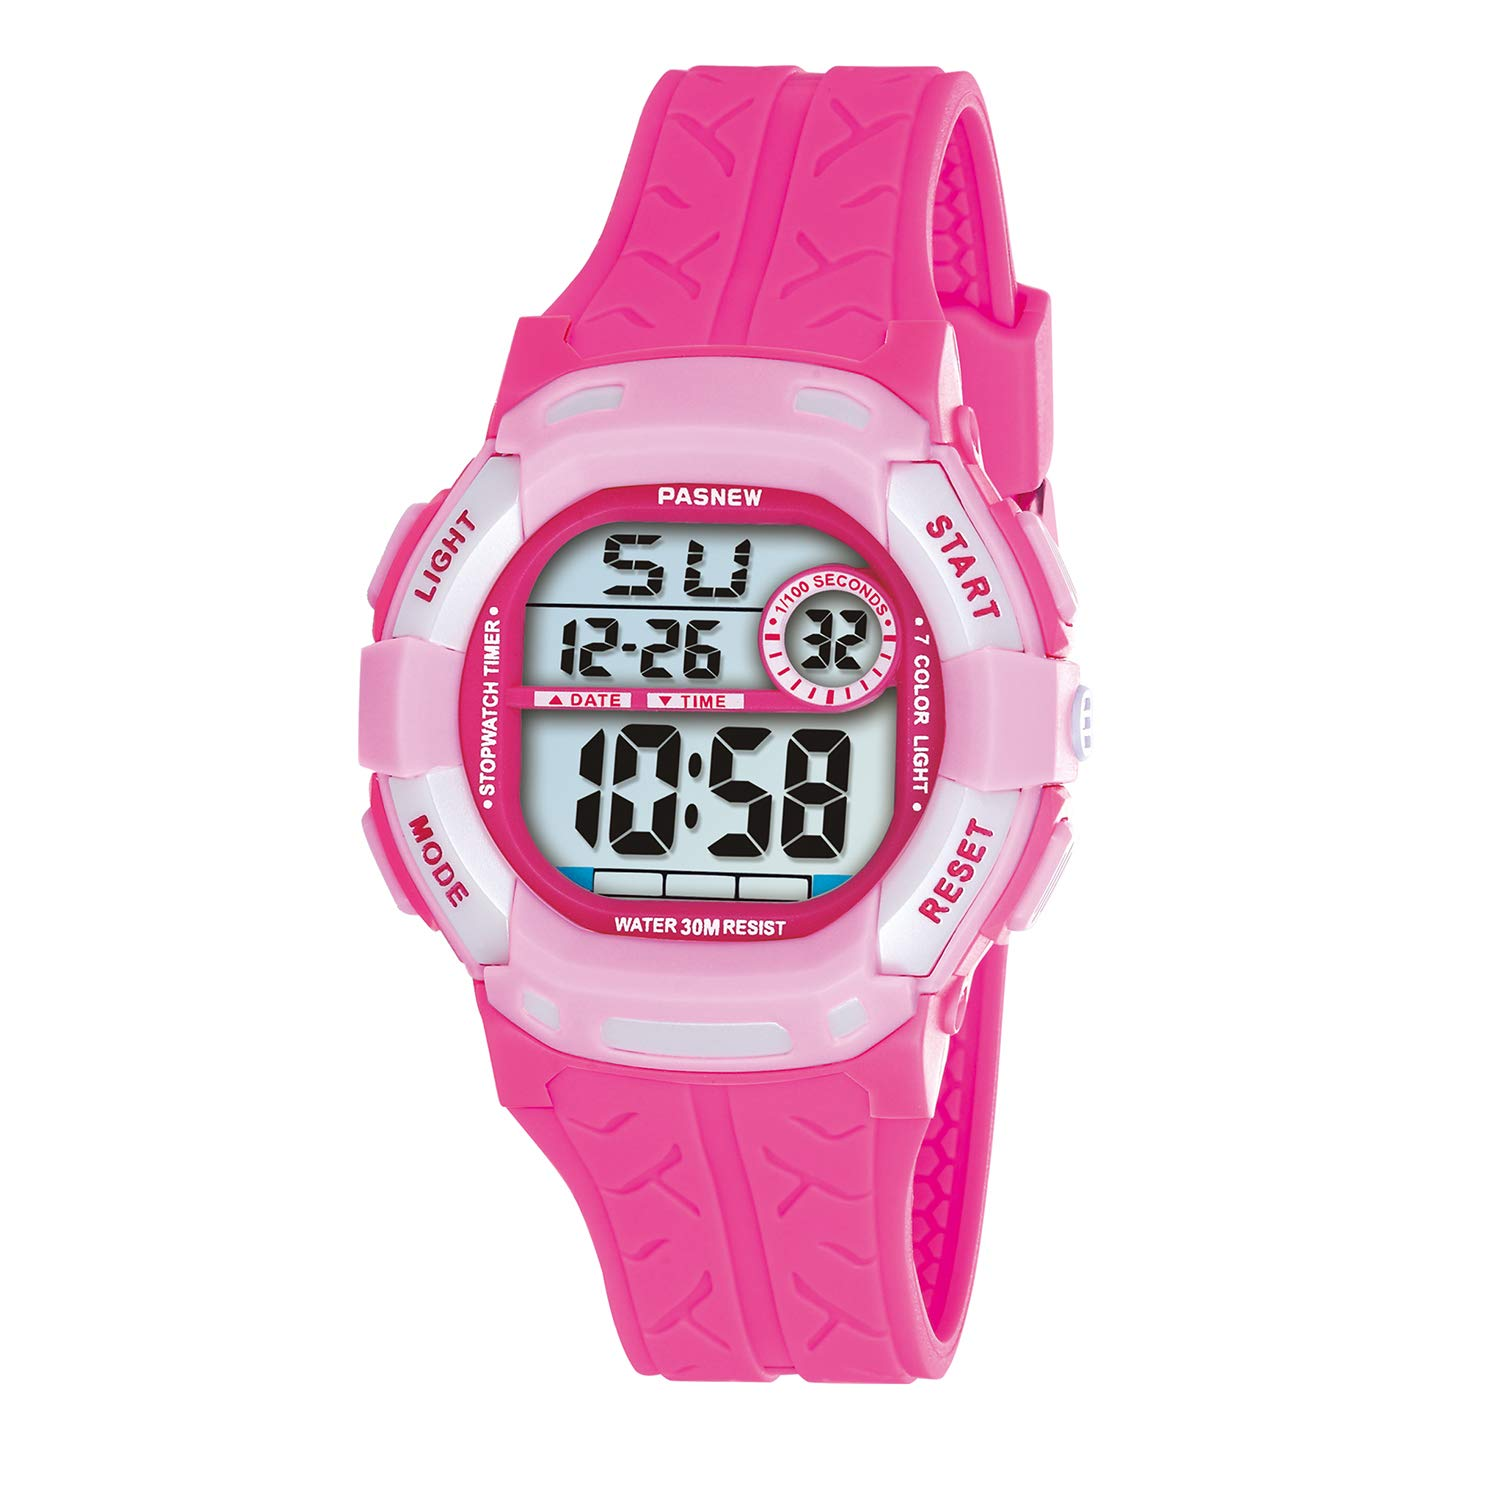 Kids Watches Waterproof 100FT Digital Sports Wristwatch with 7-Color Flashing LED Light Alarm Stopwatch Chime Date Day Rose Pink